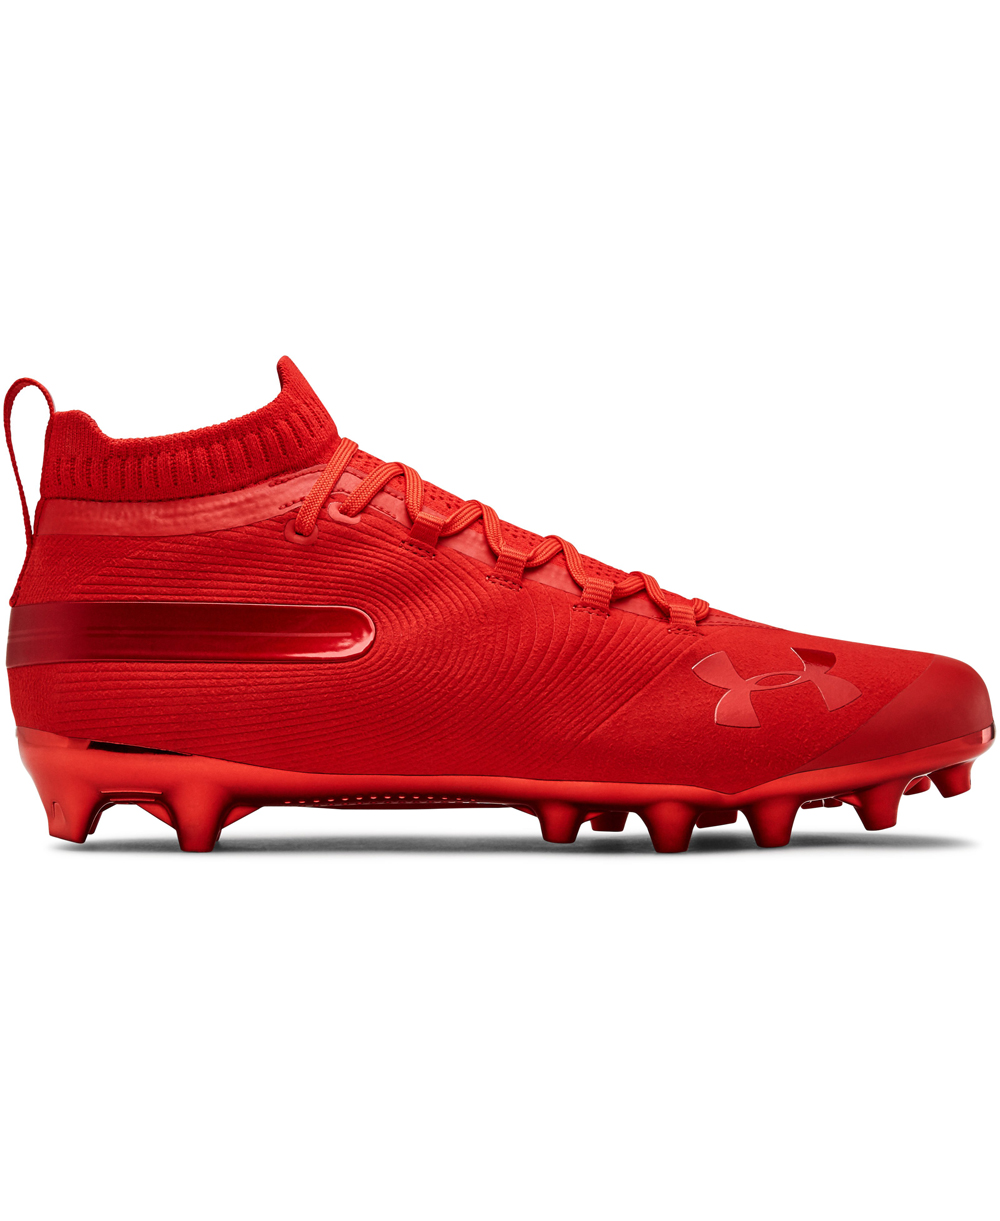 5274198b0ad Under Armour Men s Spotlight Suede MC American Football Cleats Red